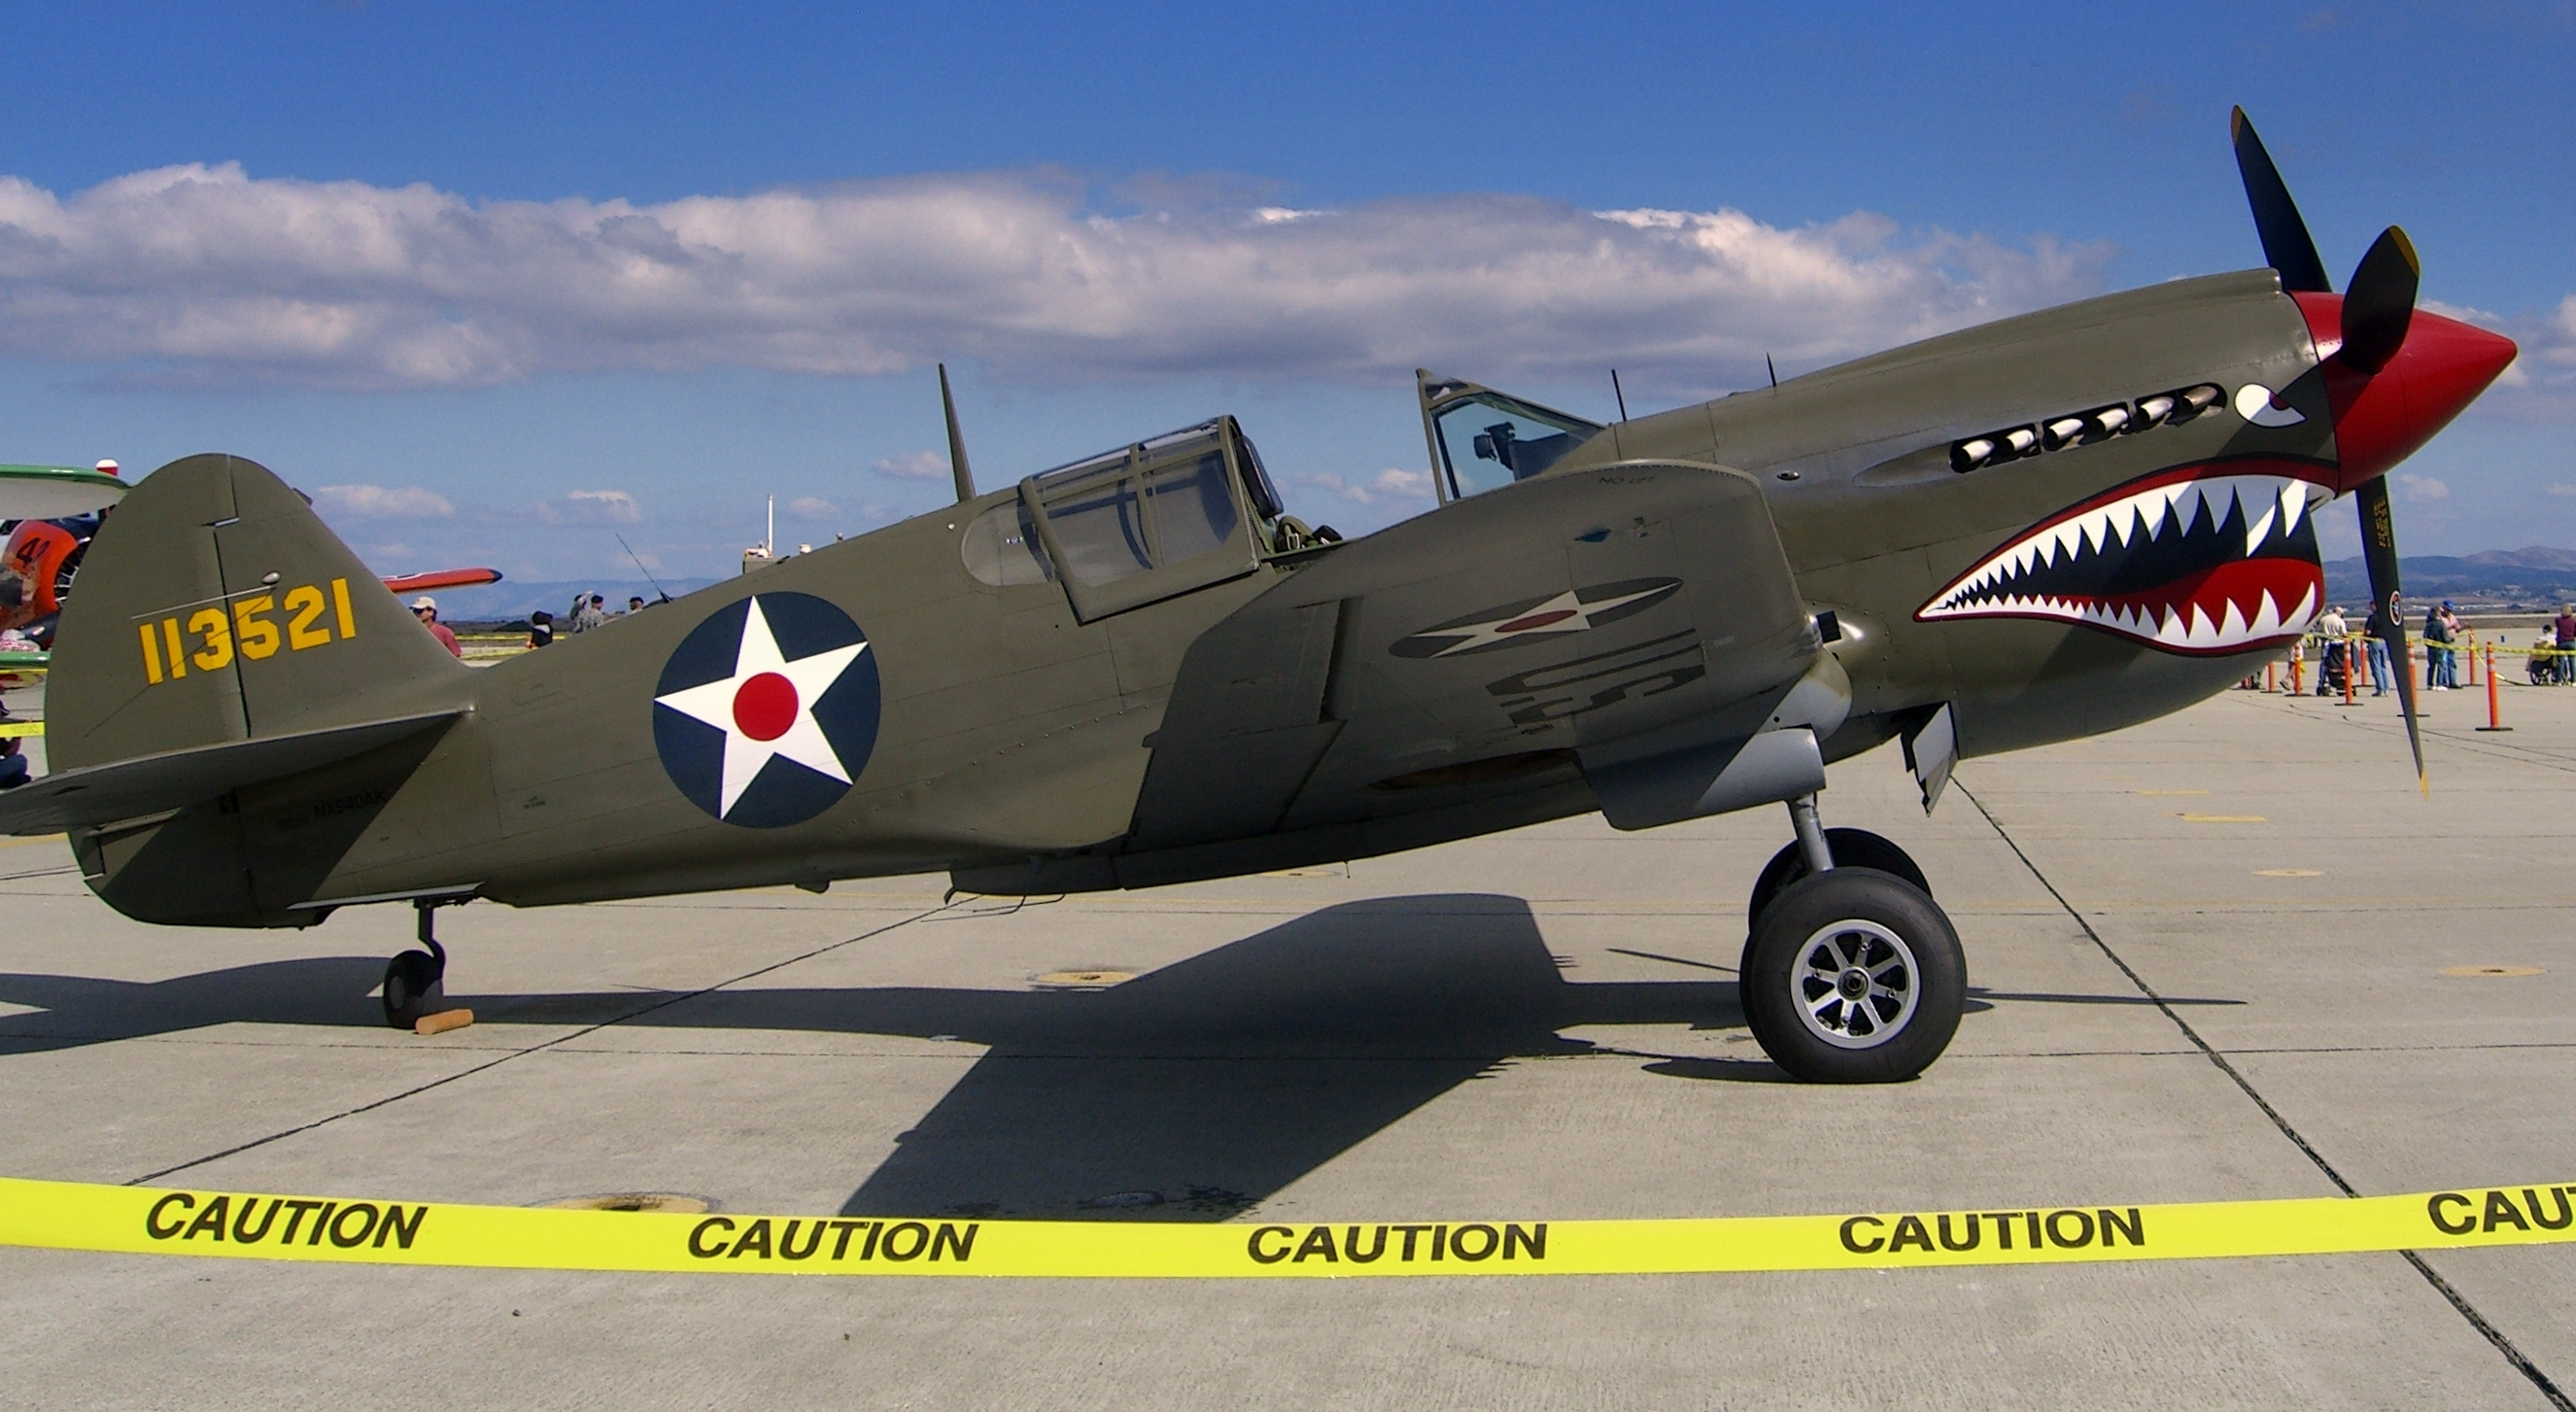 Curtiss_P-40_Warhawk.jpg